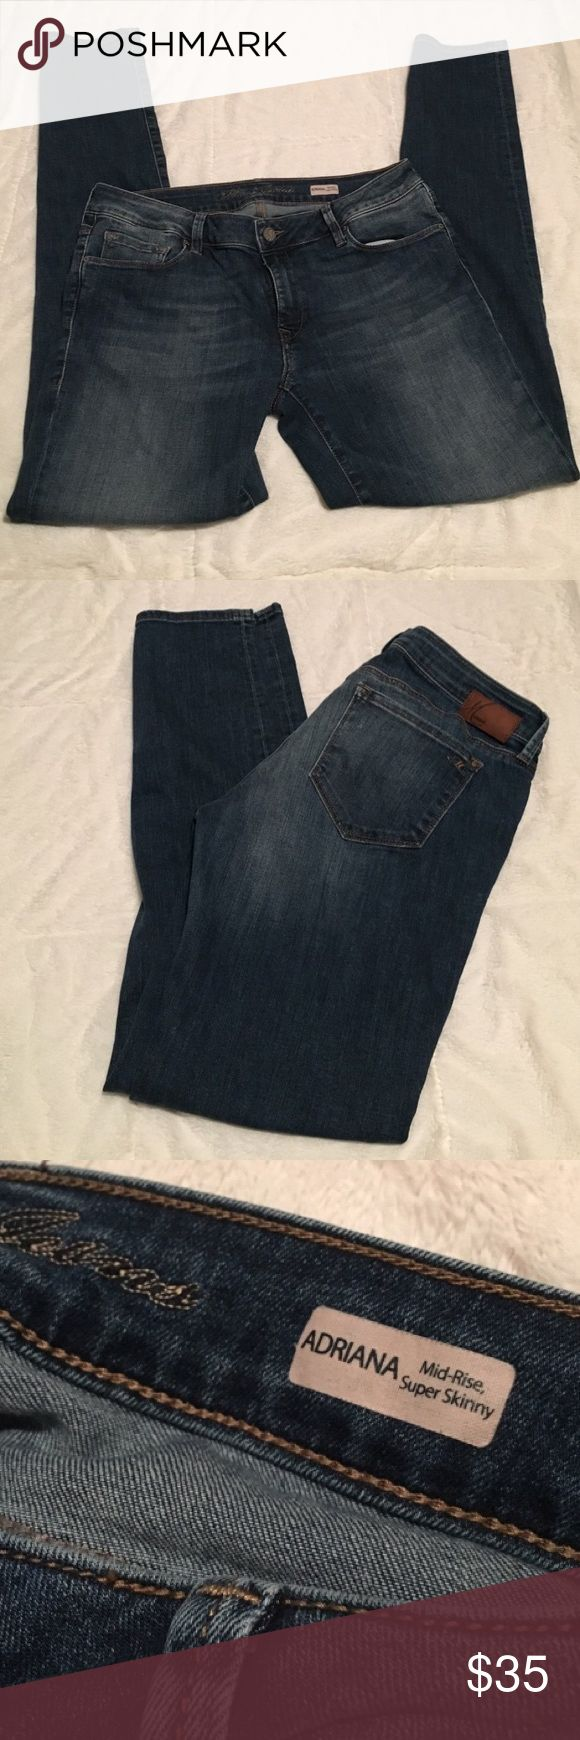 "Mavi jeans. Adriana mid rise-super skinny Great jeans! Size 31. Has stretch to them. 32"" inseam. Very slimming jeans. Great deal for the price. Mavi Jeans Skinny"